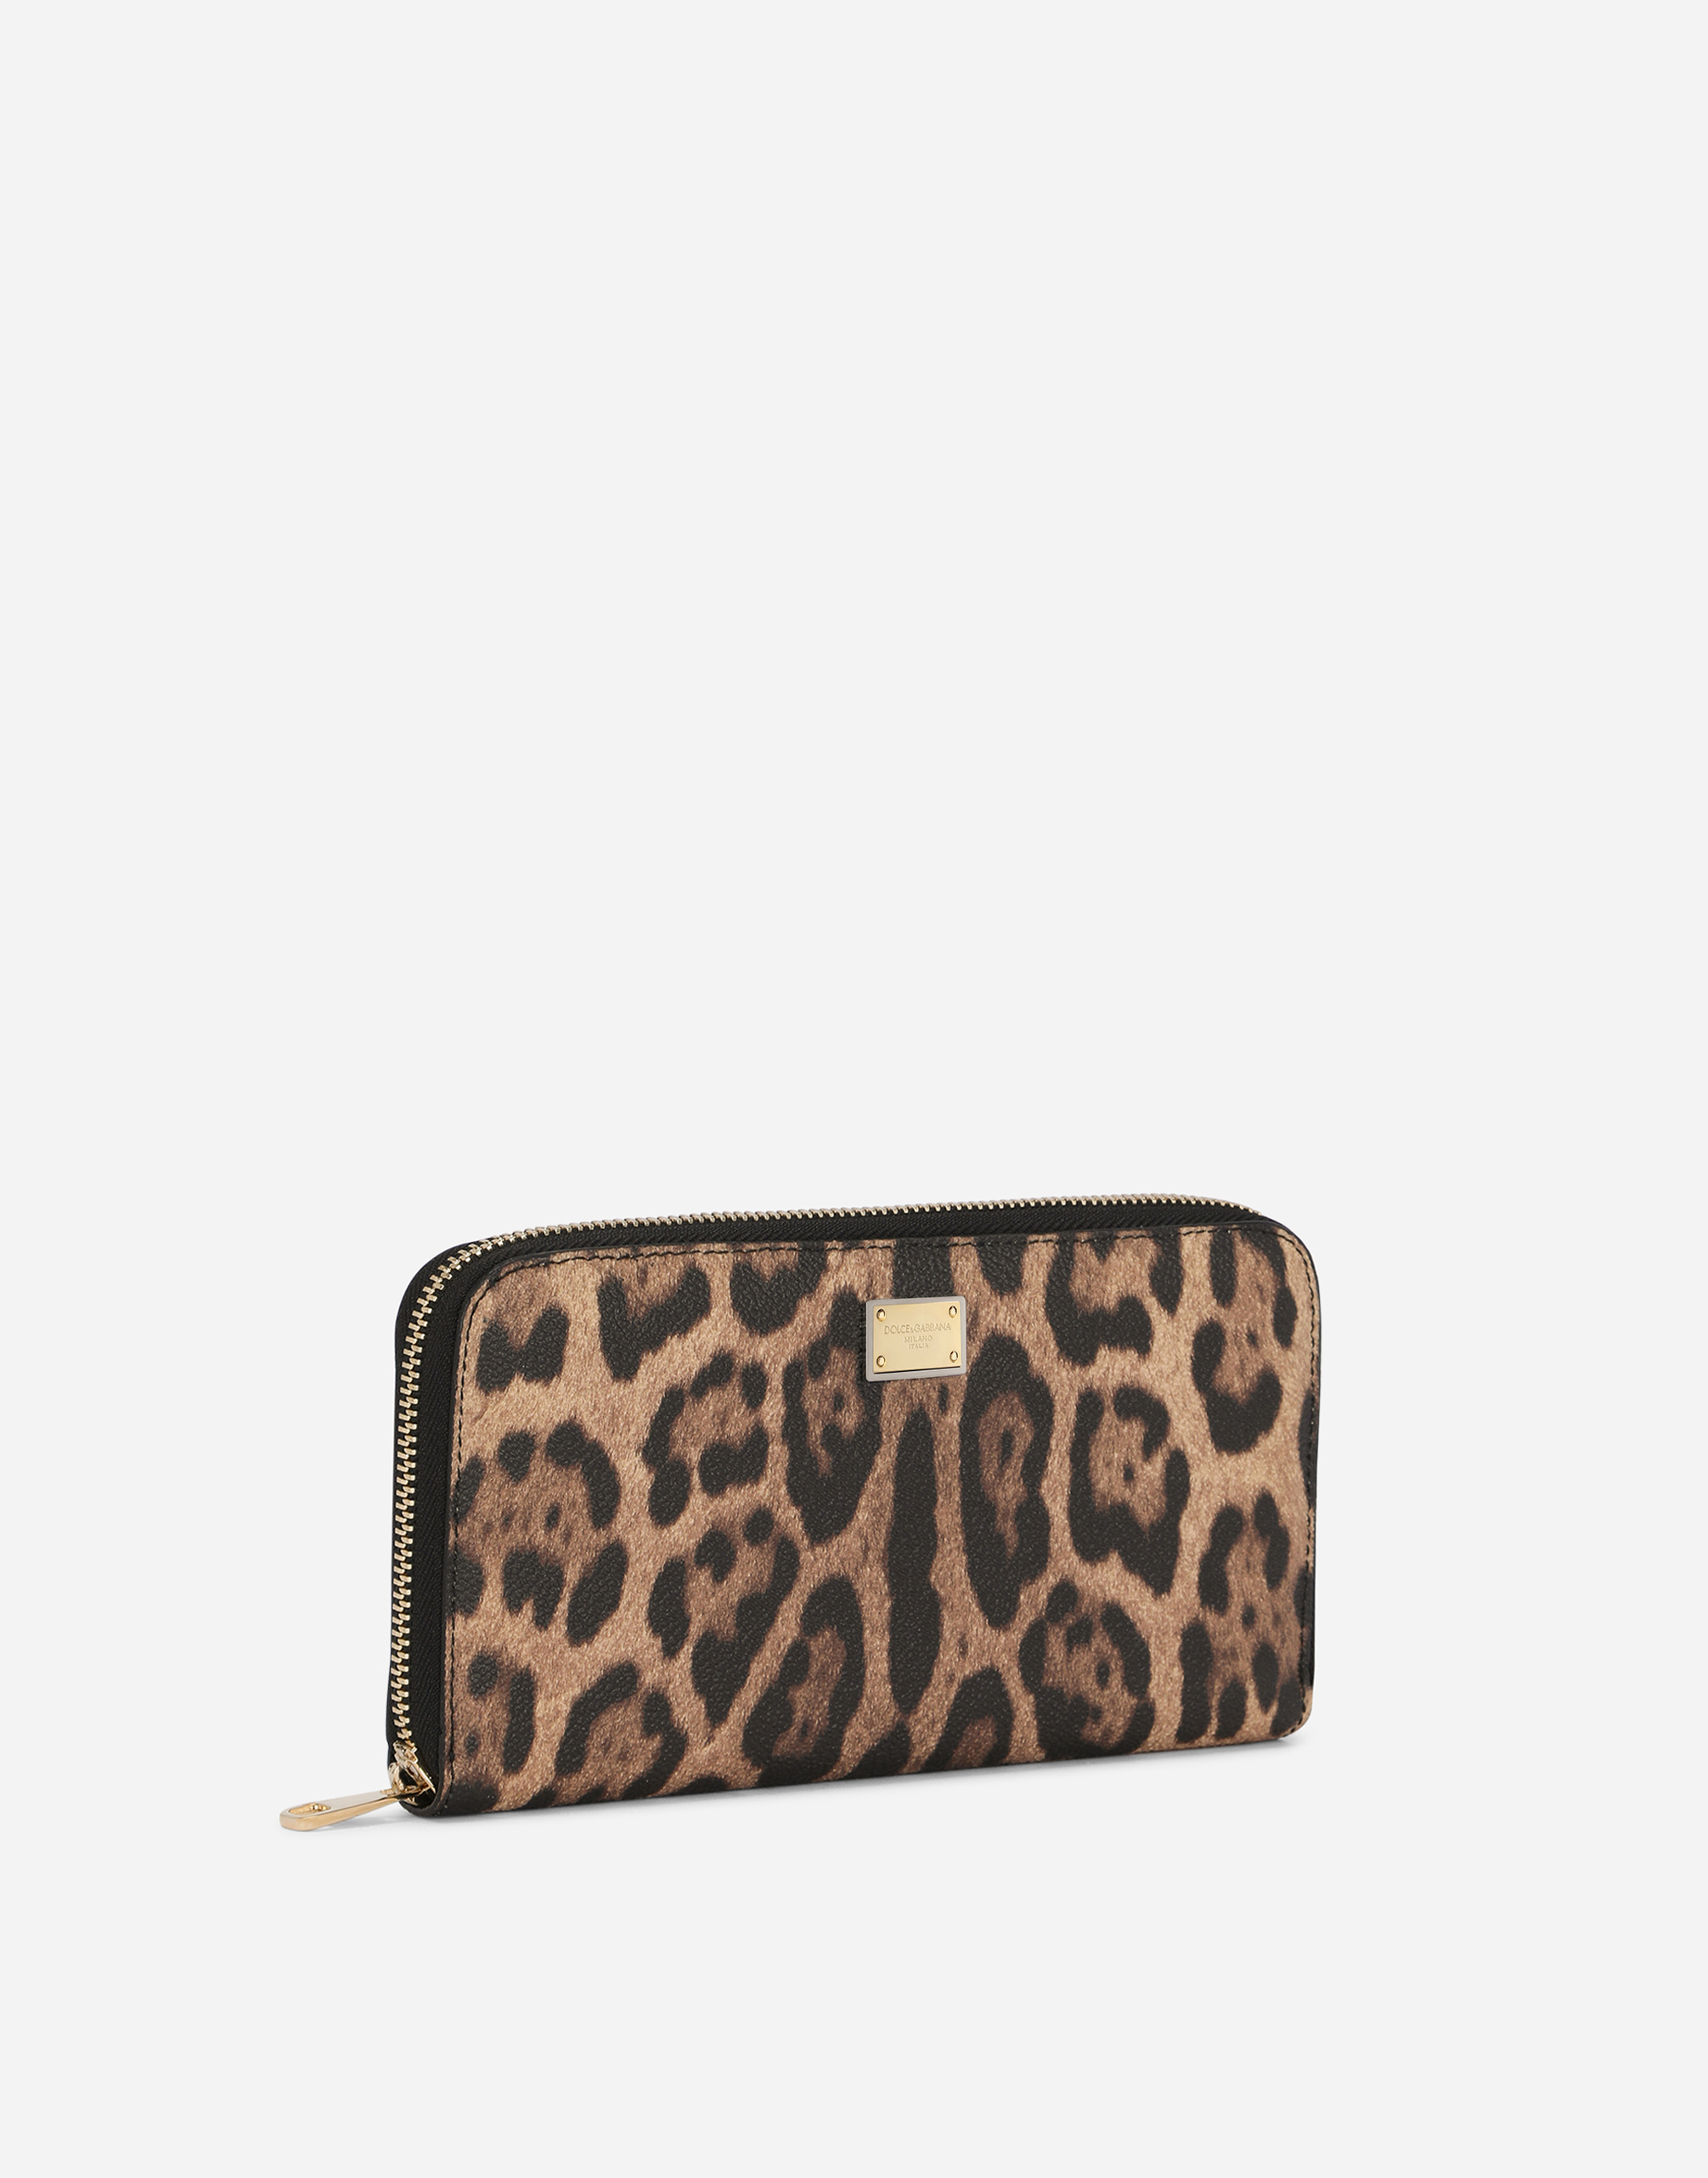 ZIP-AROUND WALLET IN LEOPARD TEXTURED LEATHER